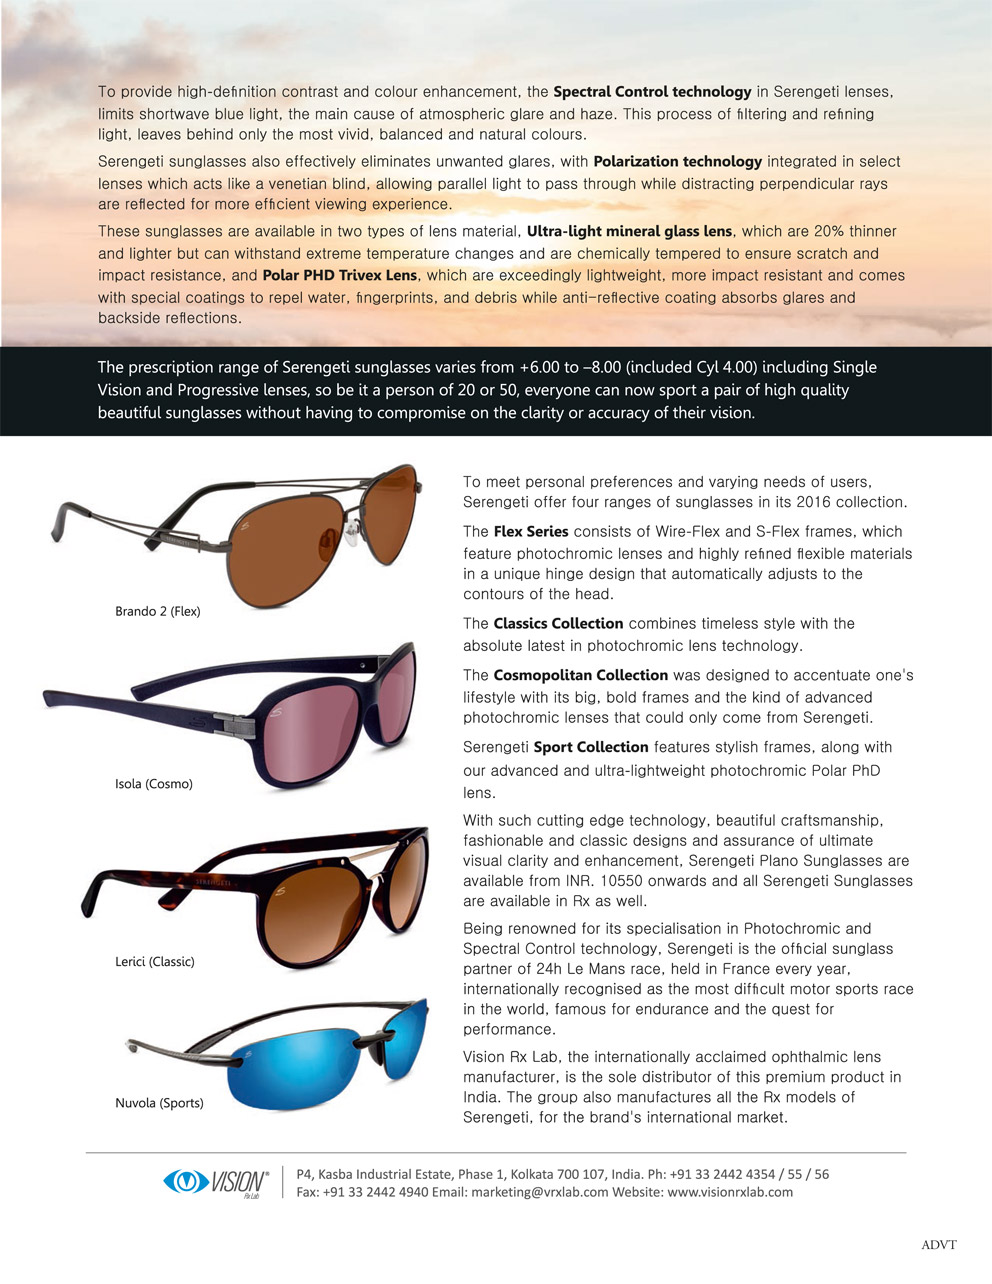 The Indian Optician page 2/6